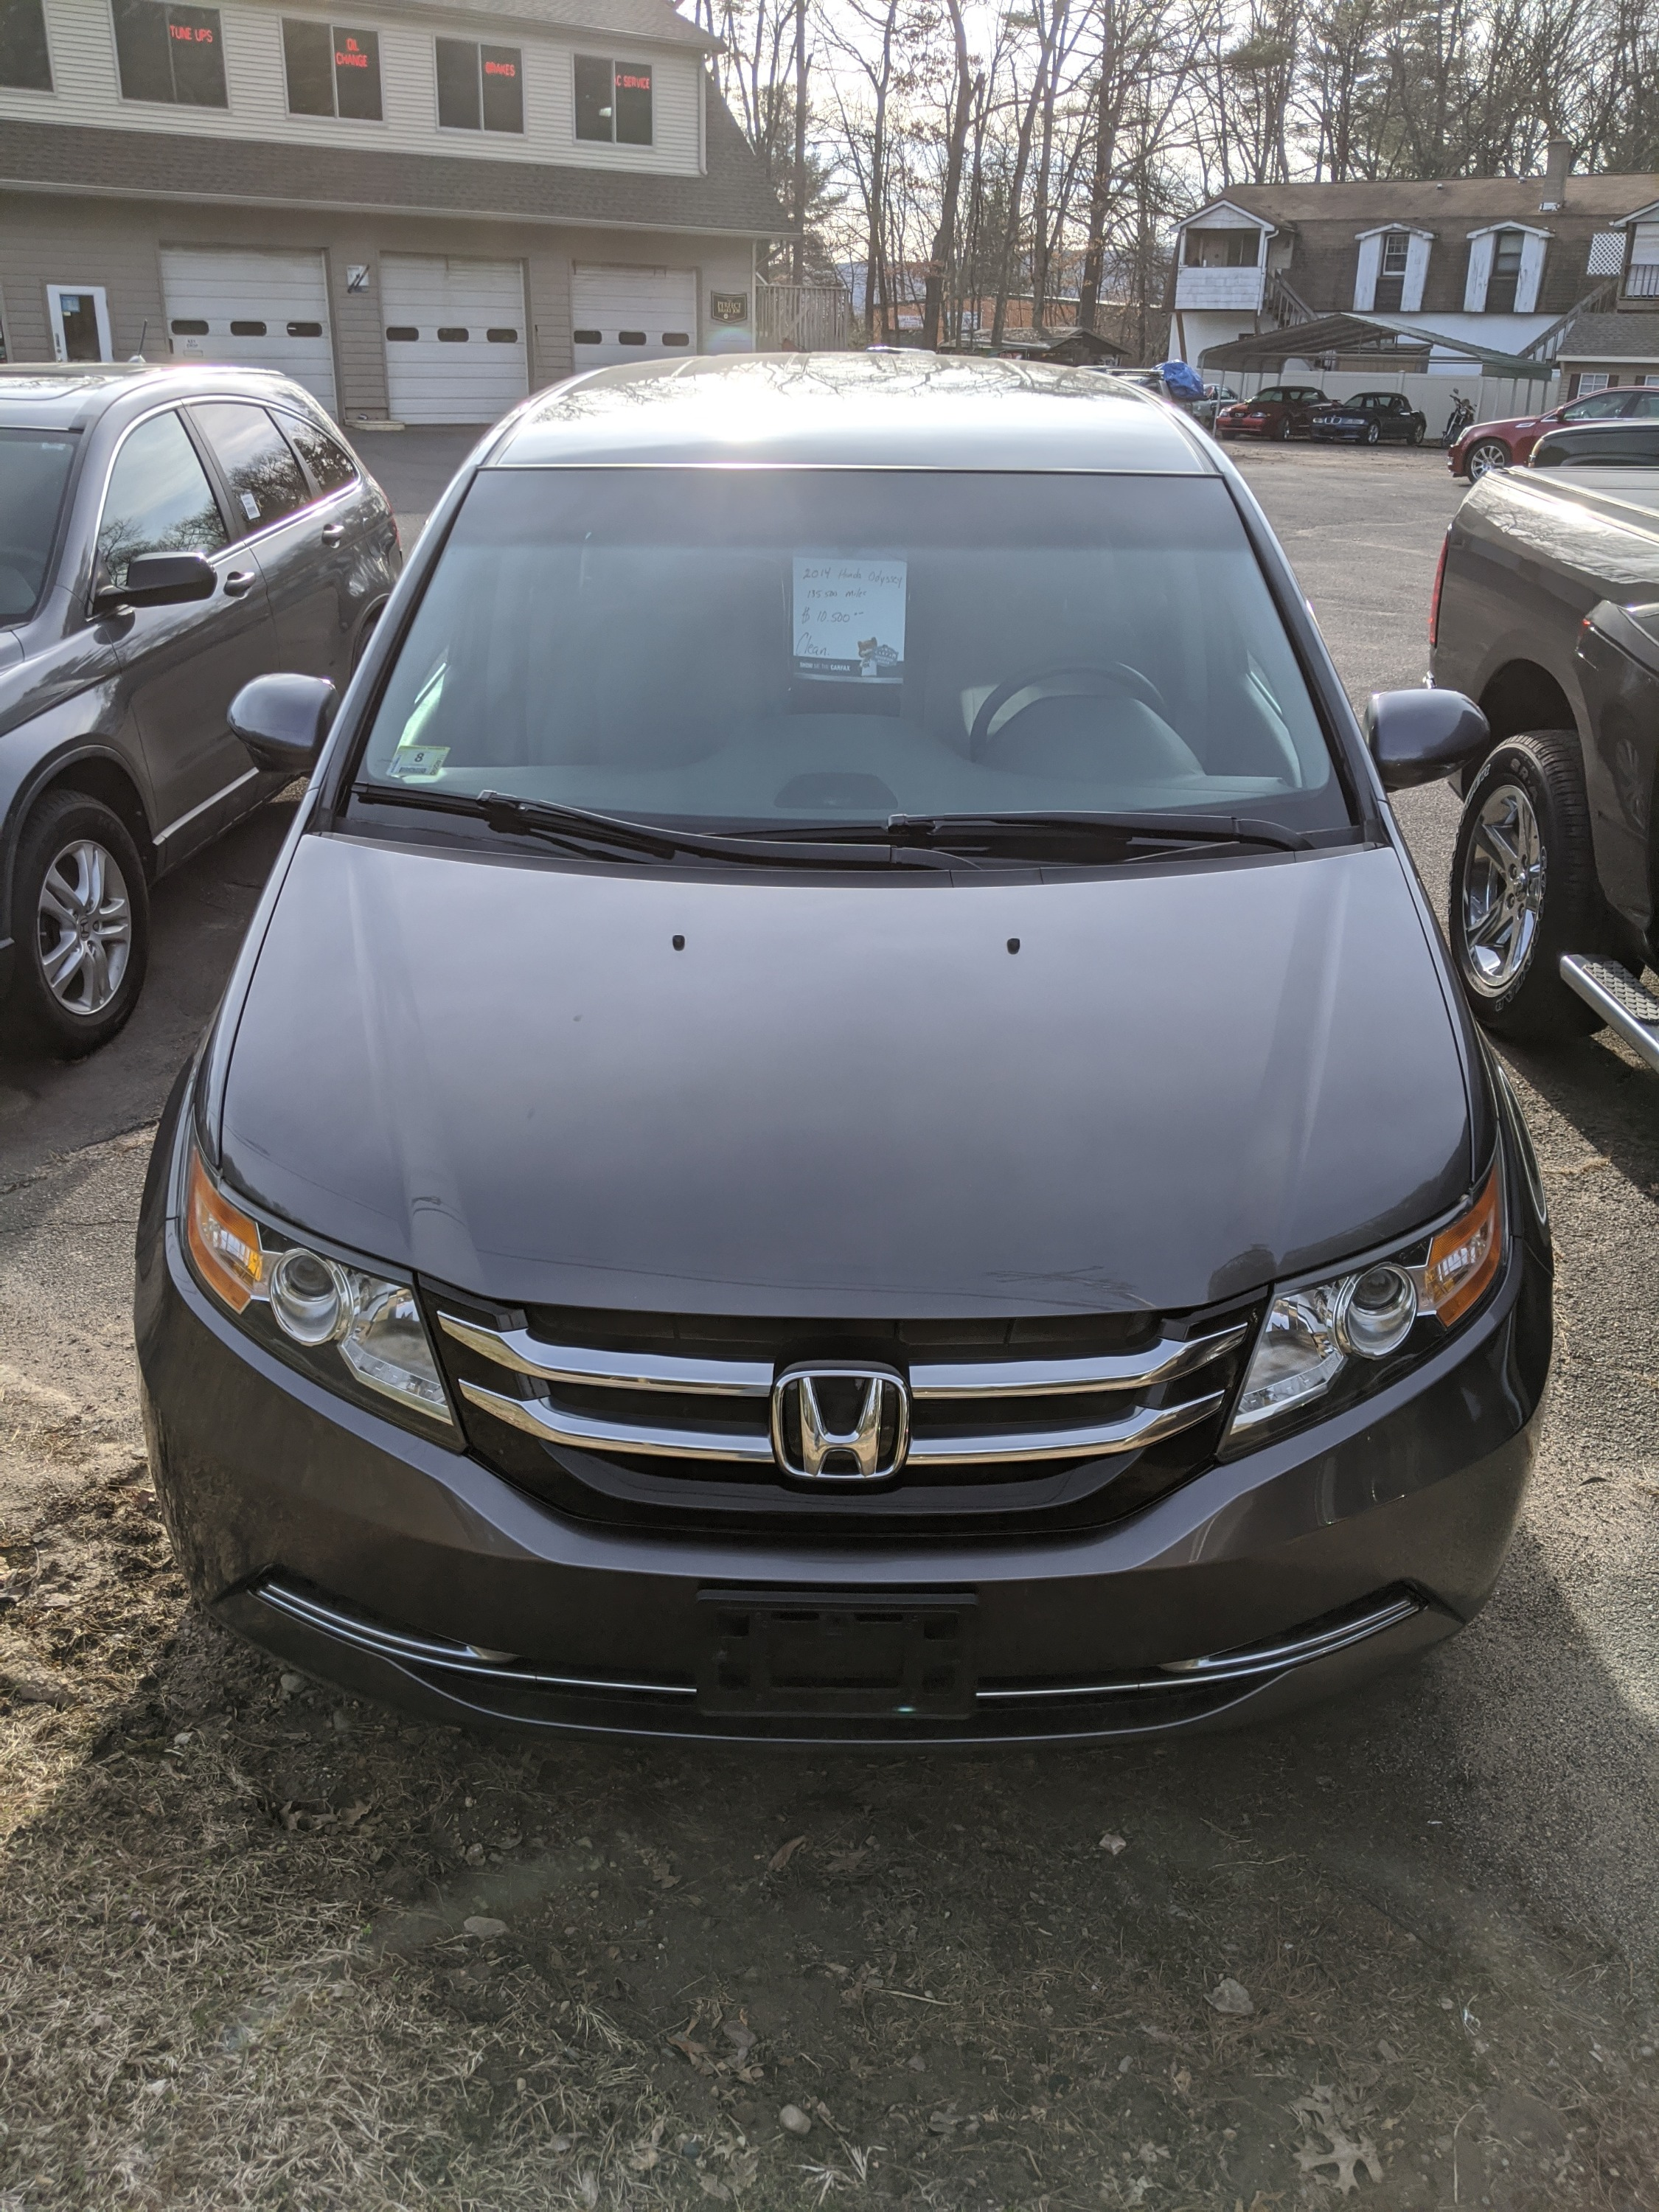 2014 Honda Odyssey with 135,500 miles